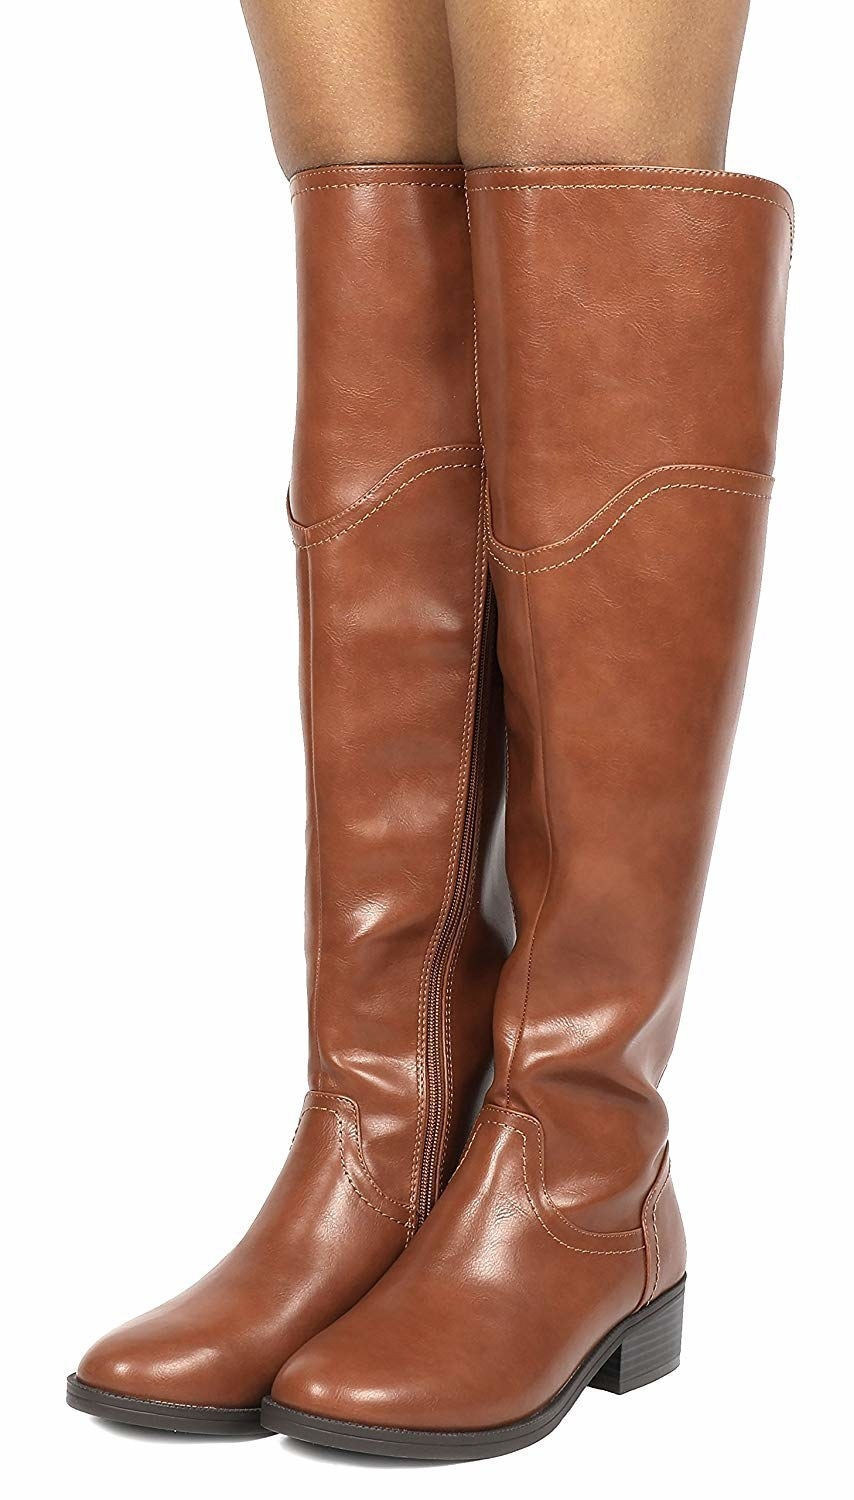 5352b971925 27 Gorgeous Pairs Of Boots You Can Get On Amazon